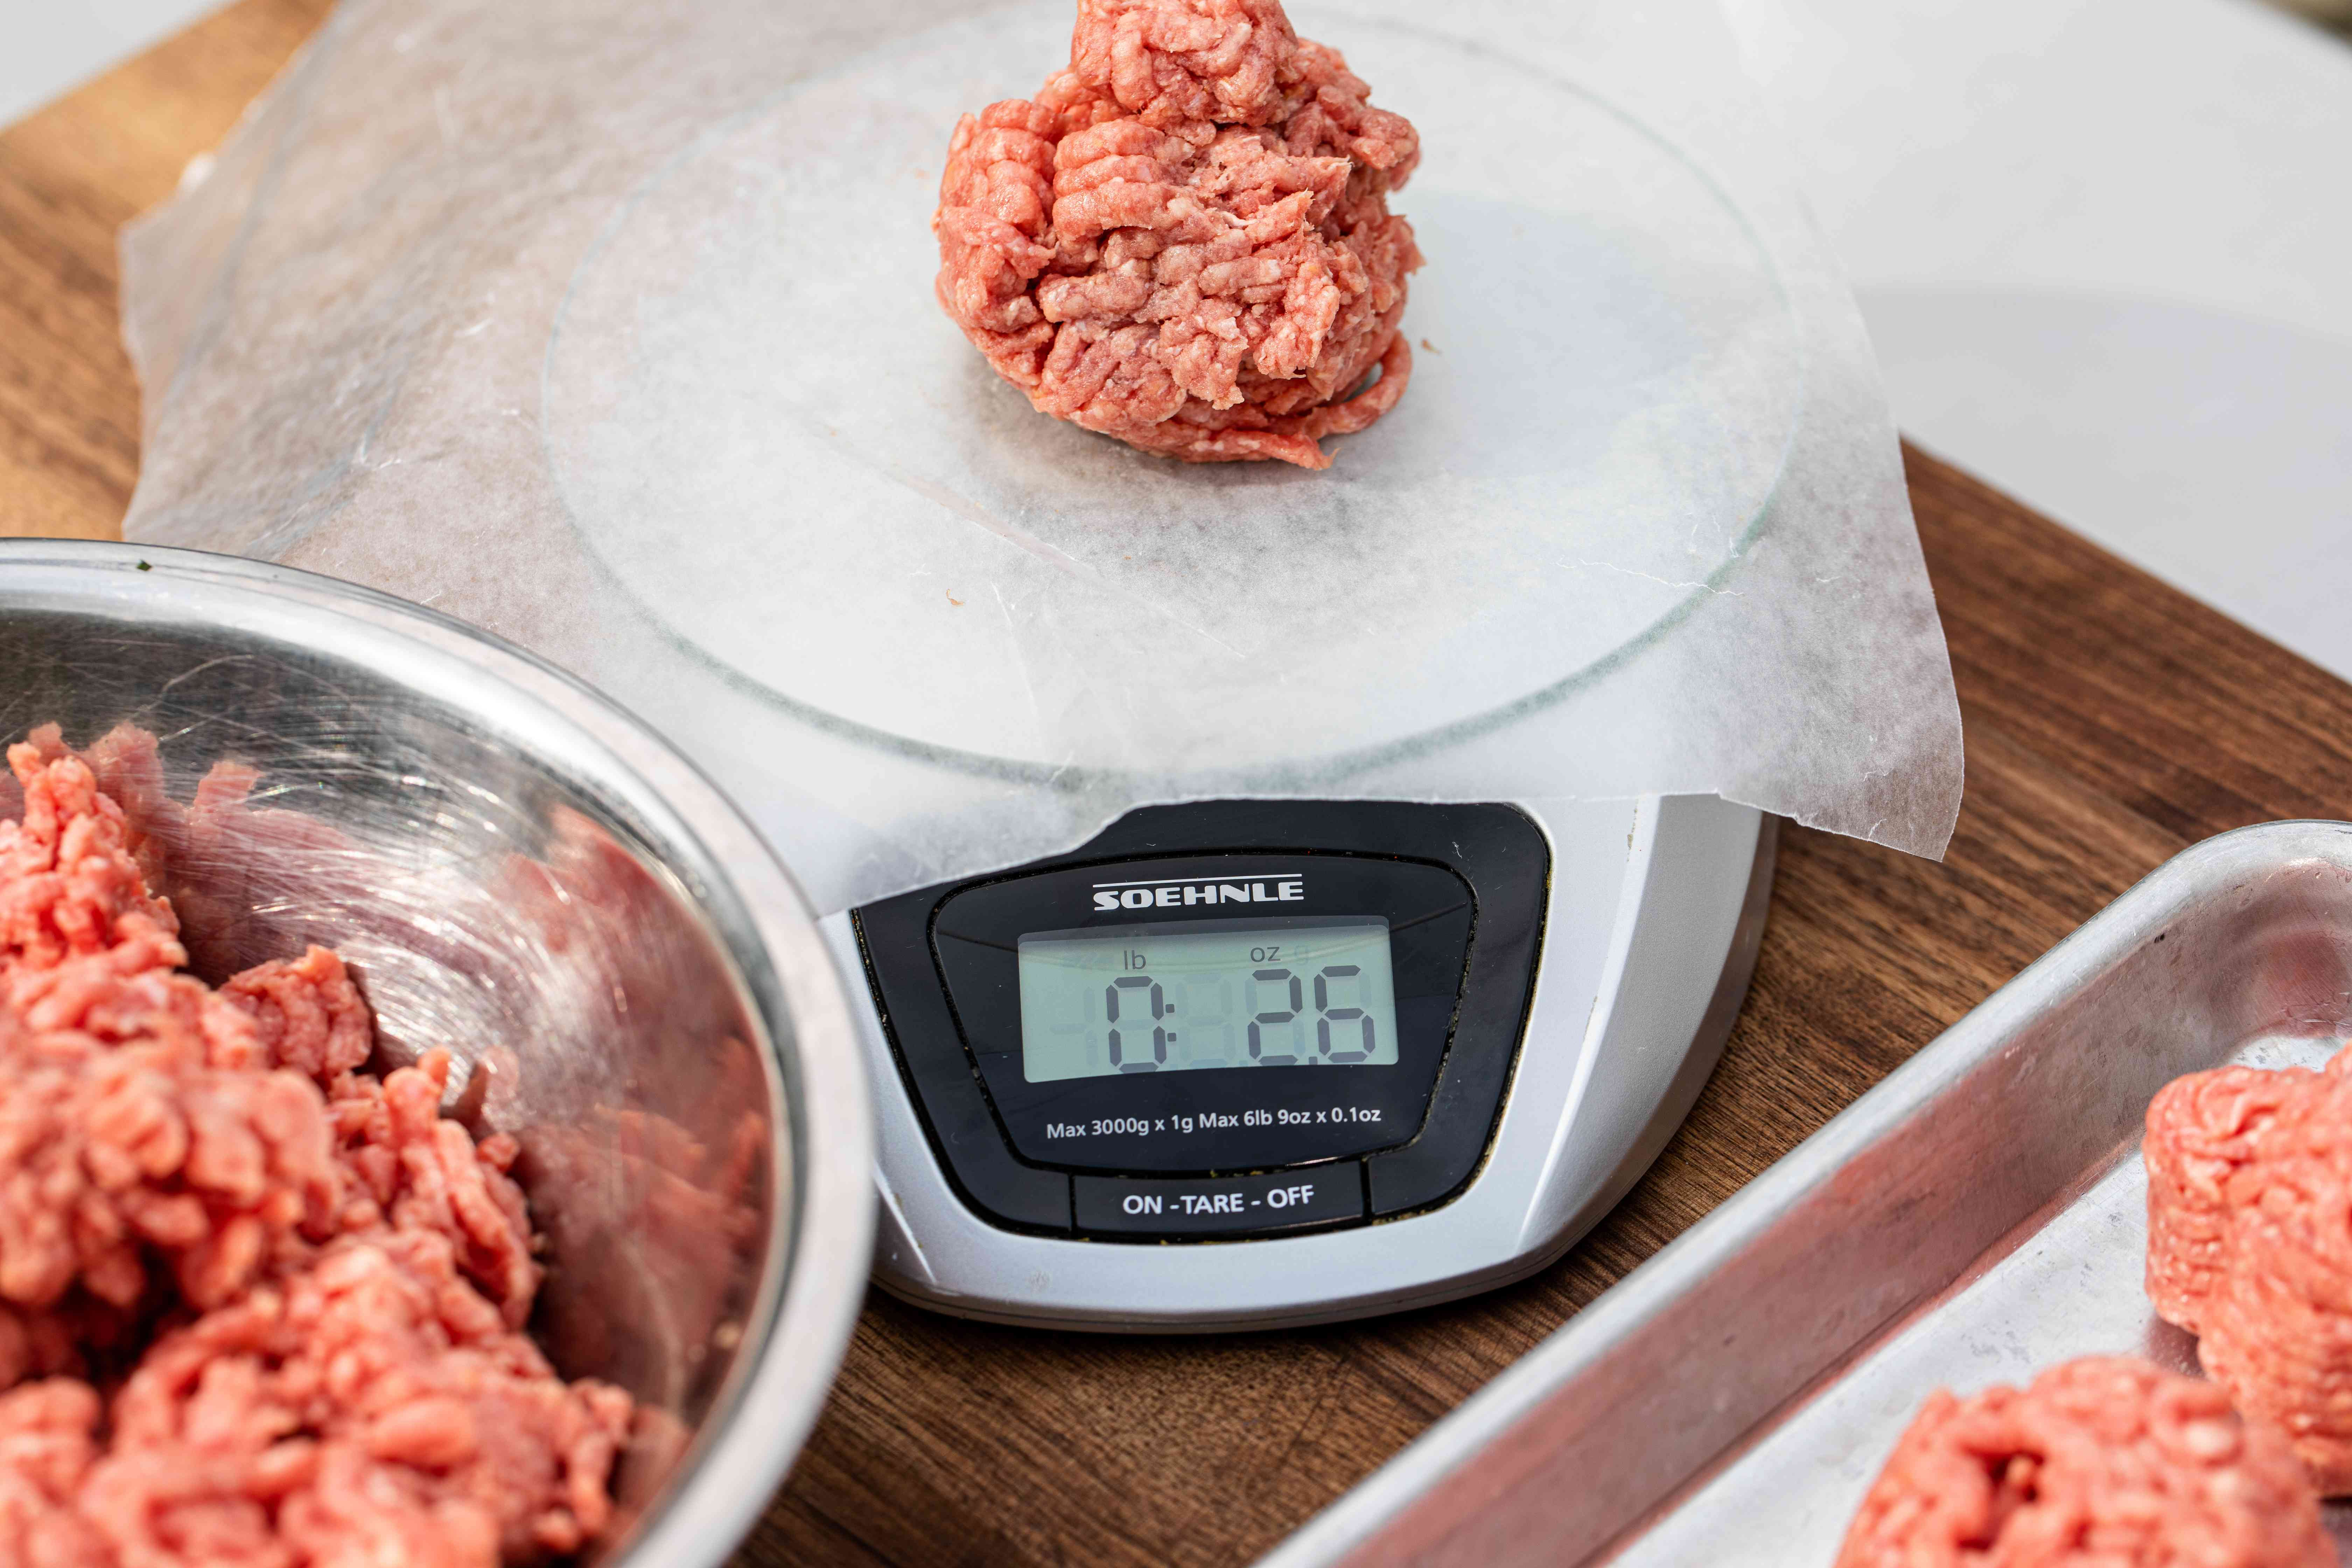 Weighing ground beef to make a Juicy Lucy burger recipe.